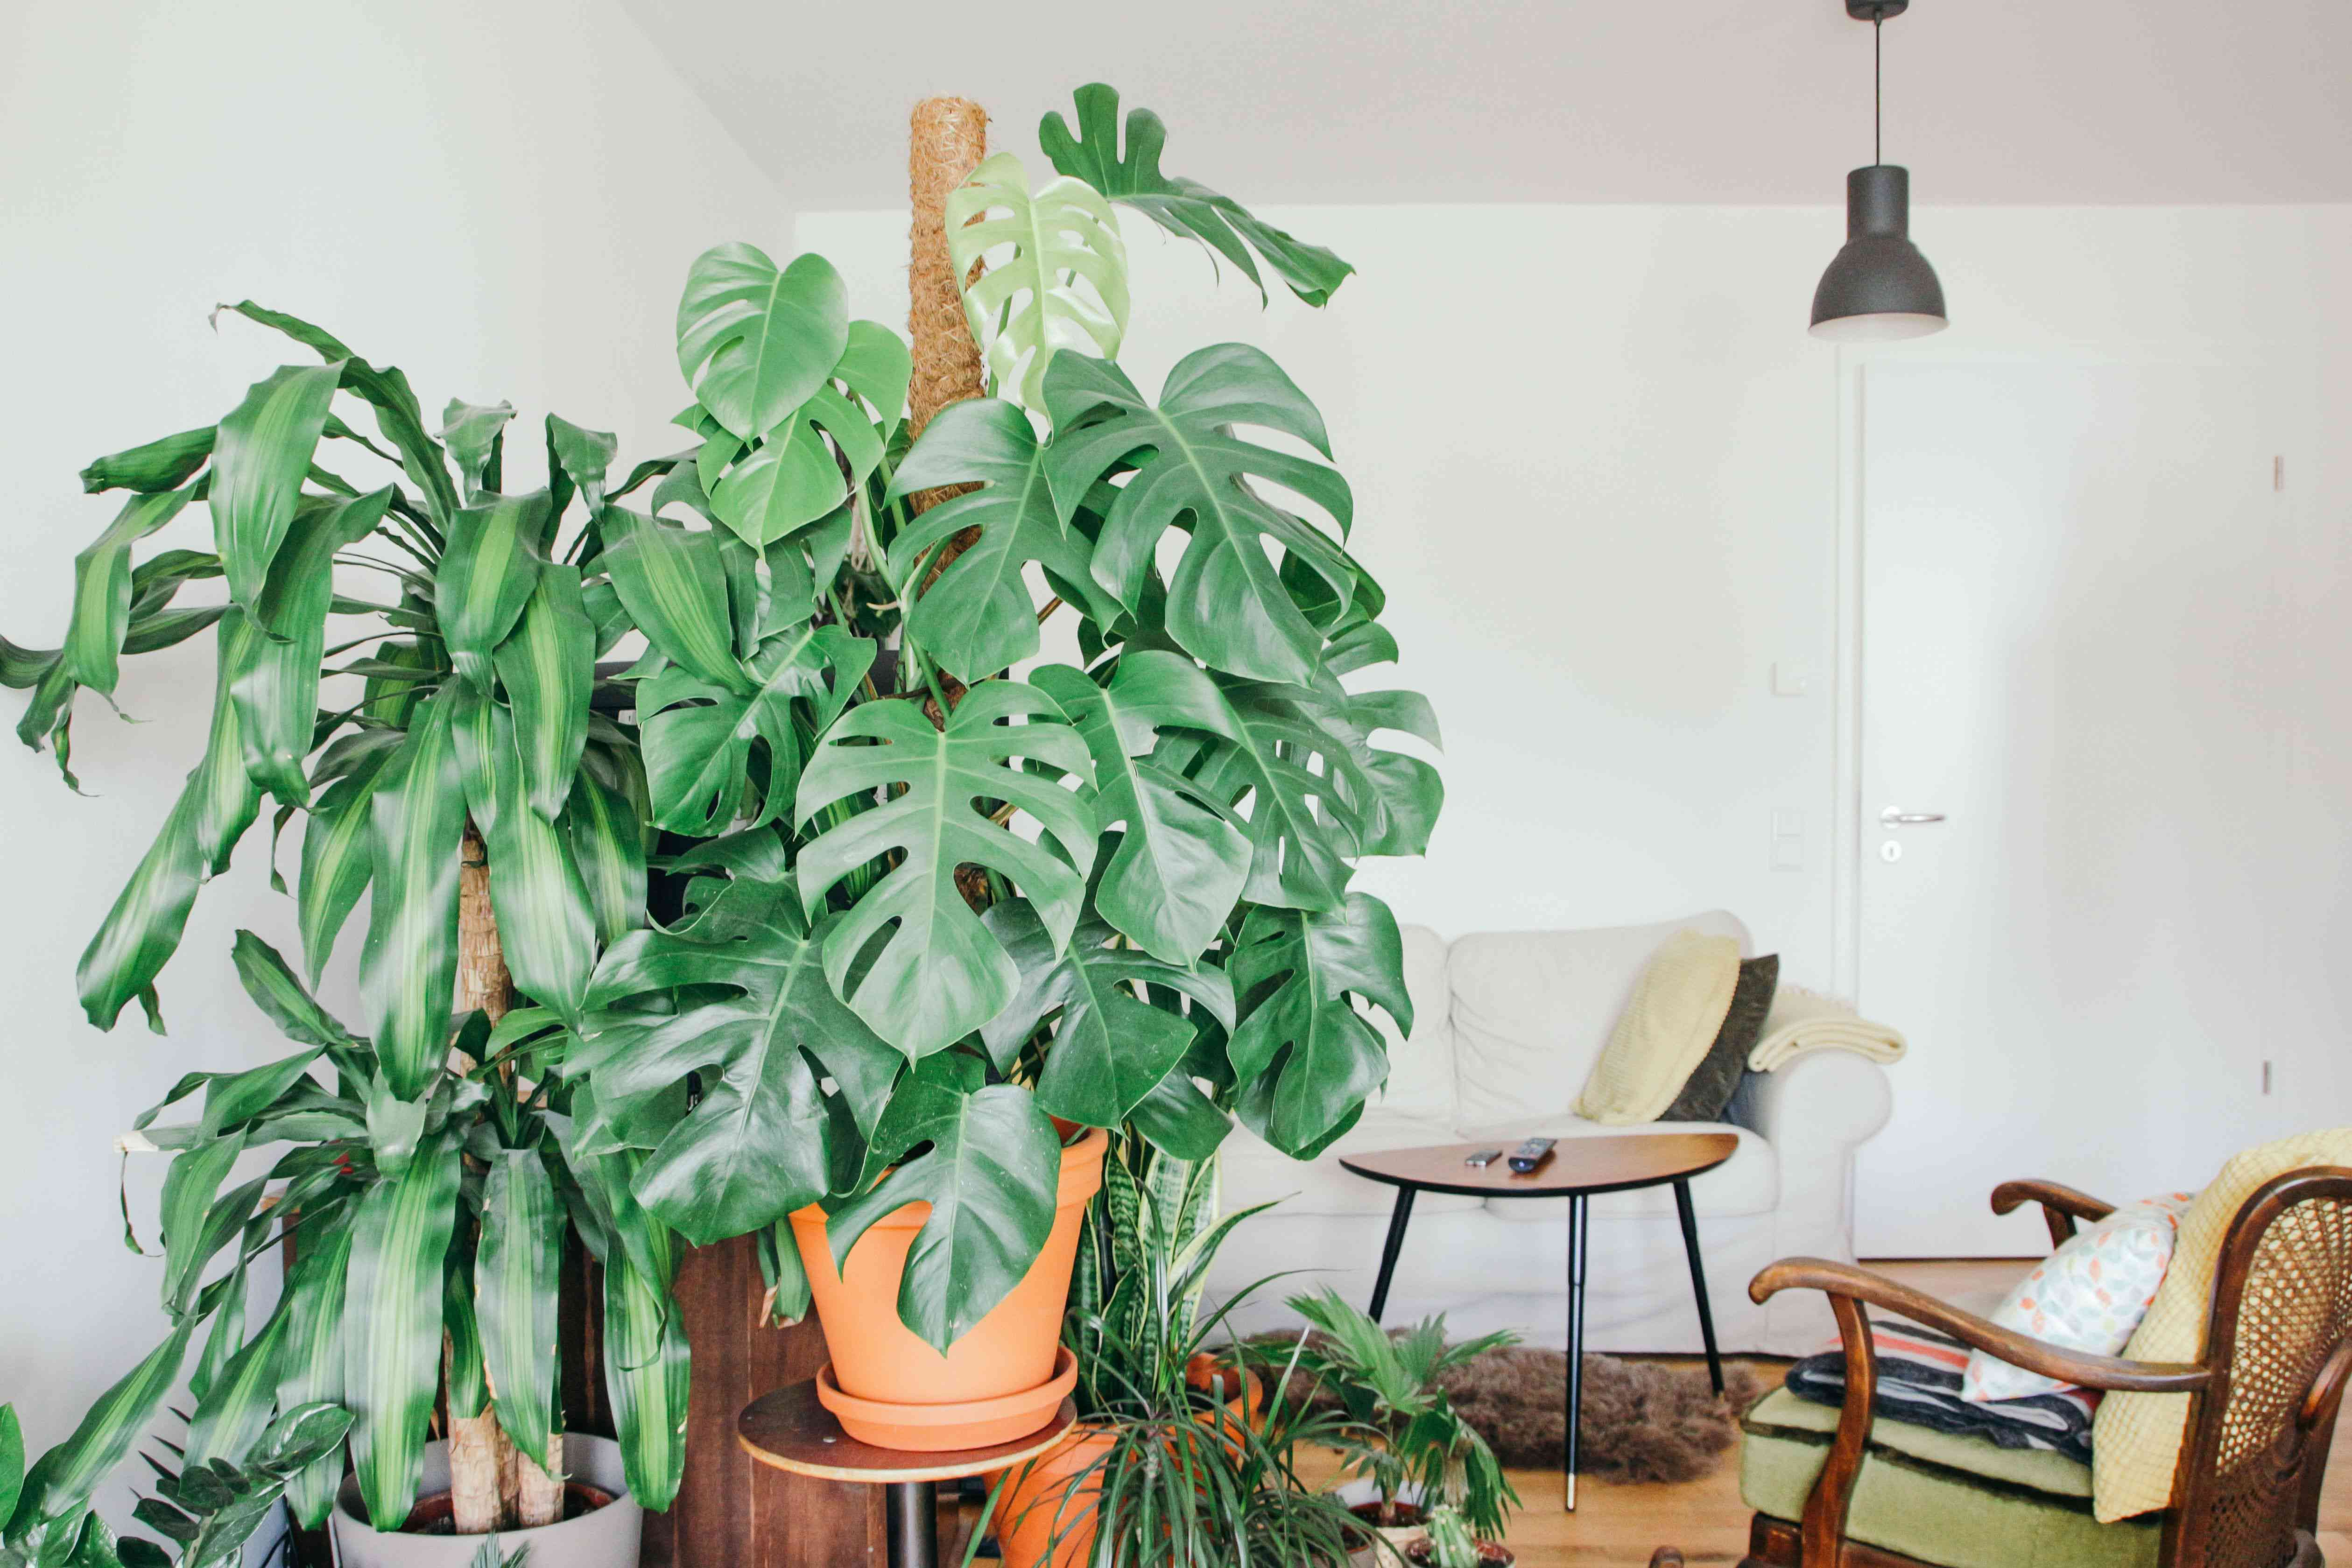 How to Care for Your Monstera Plant